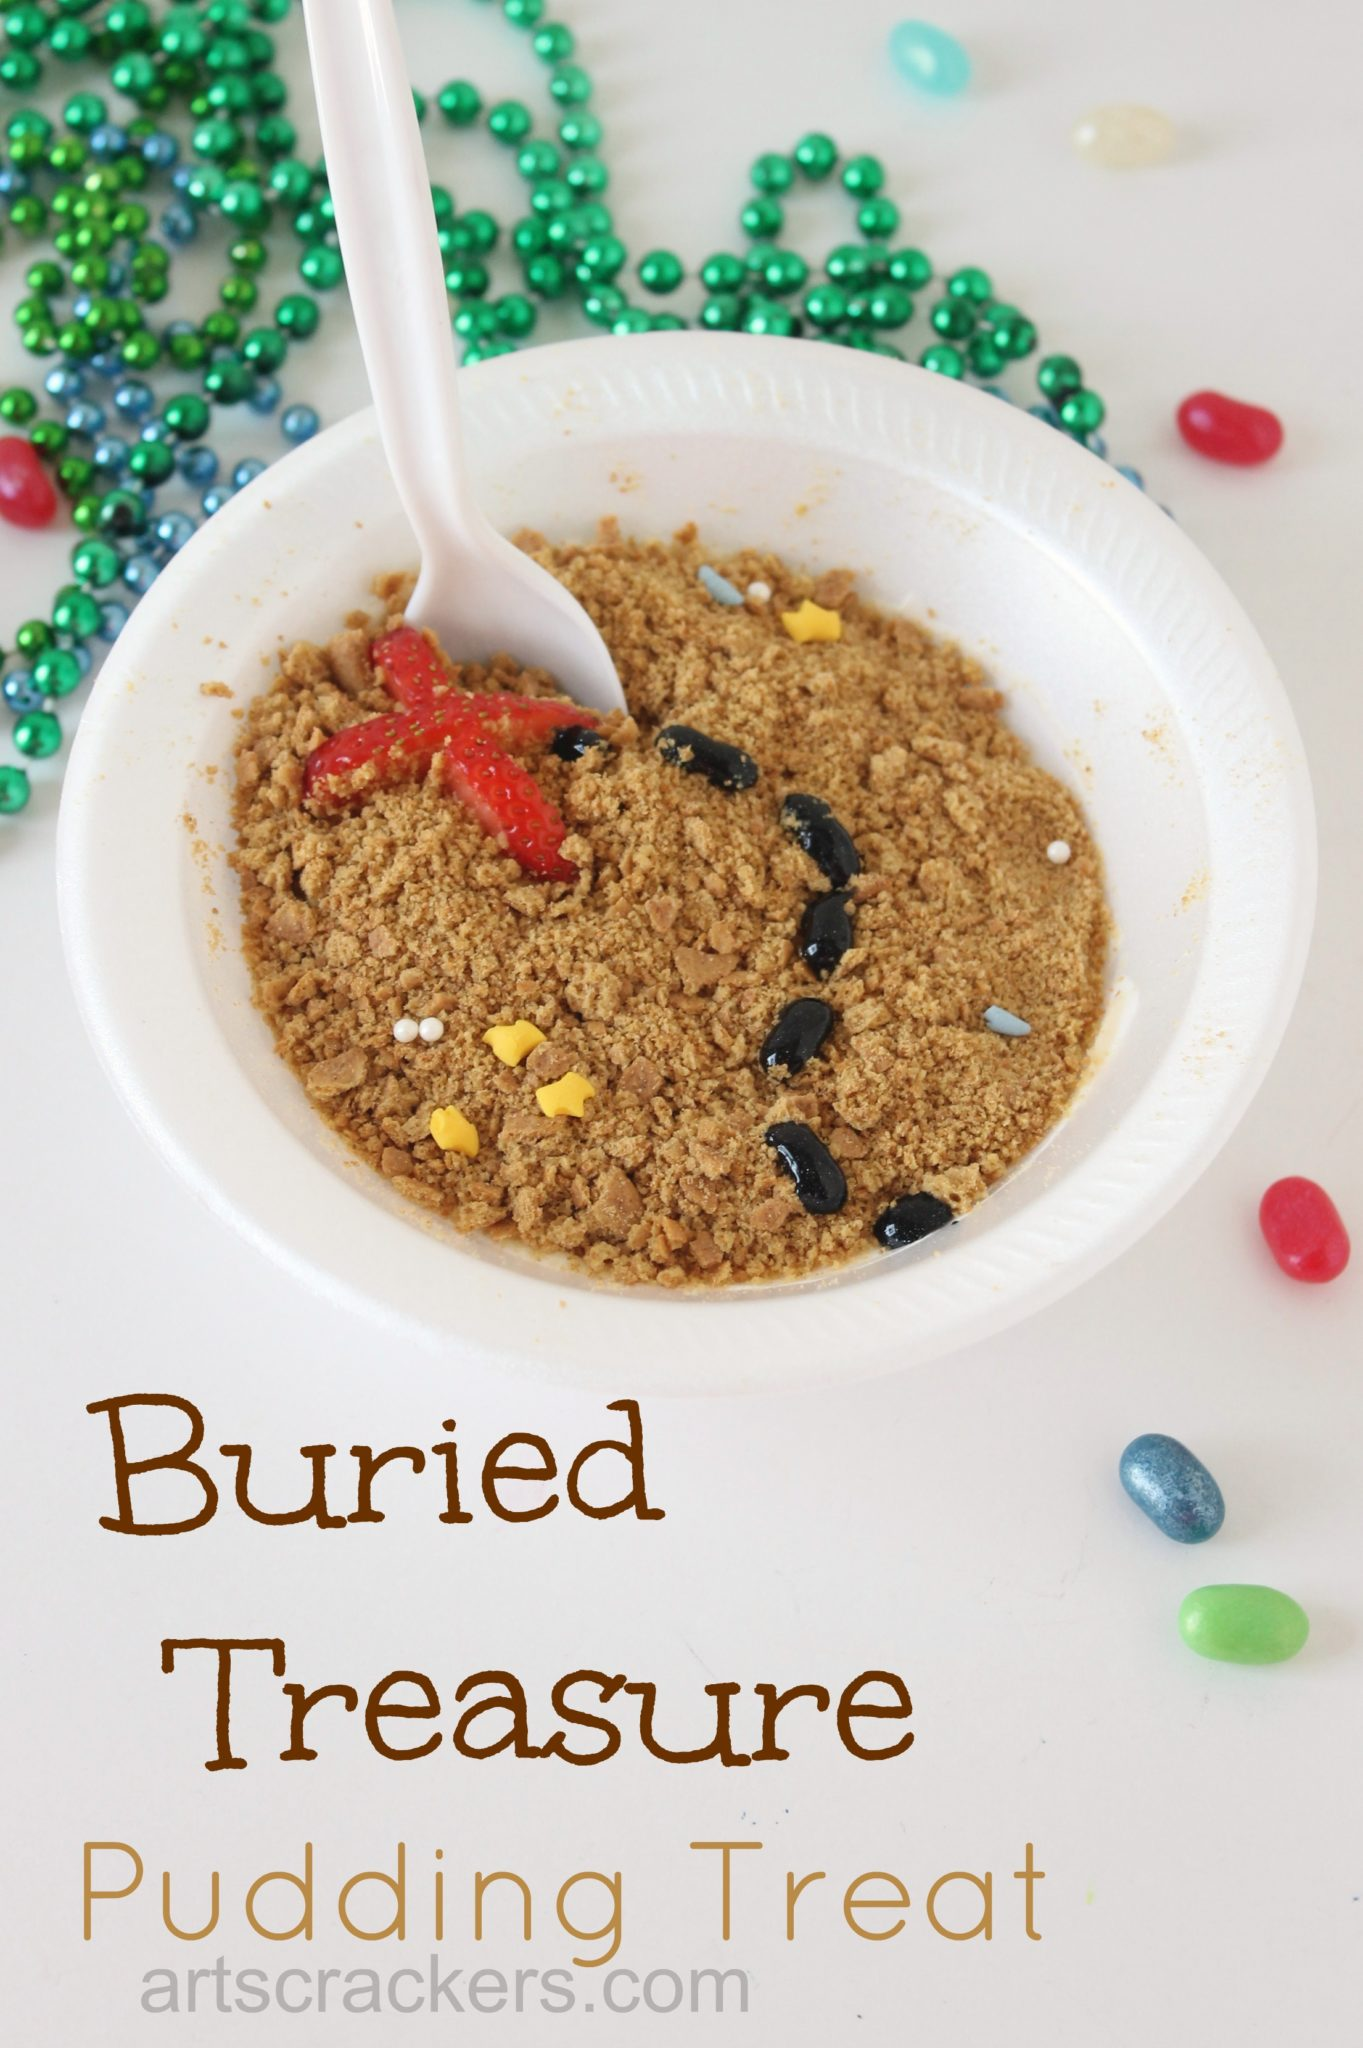 Buried Treasure Pudding Treat. Click the picture to get the tutorial.